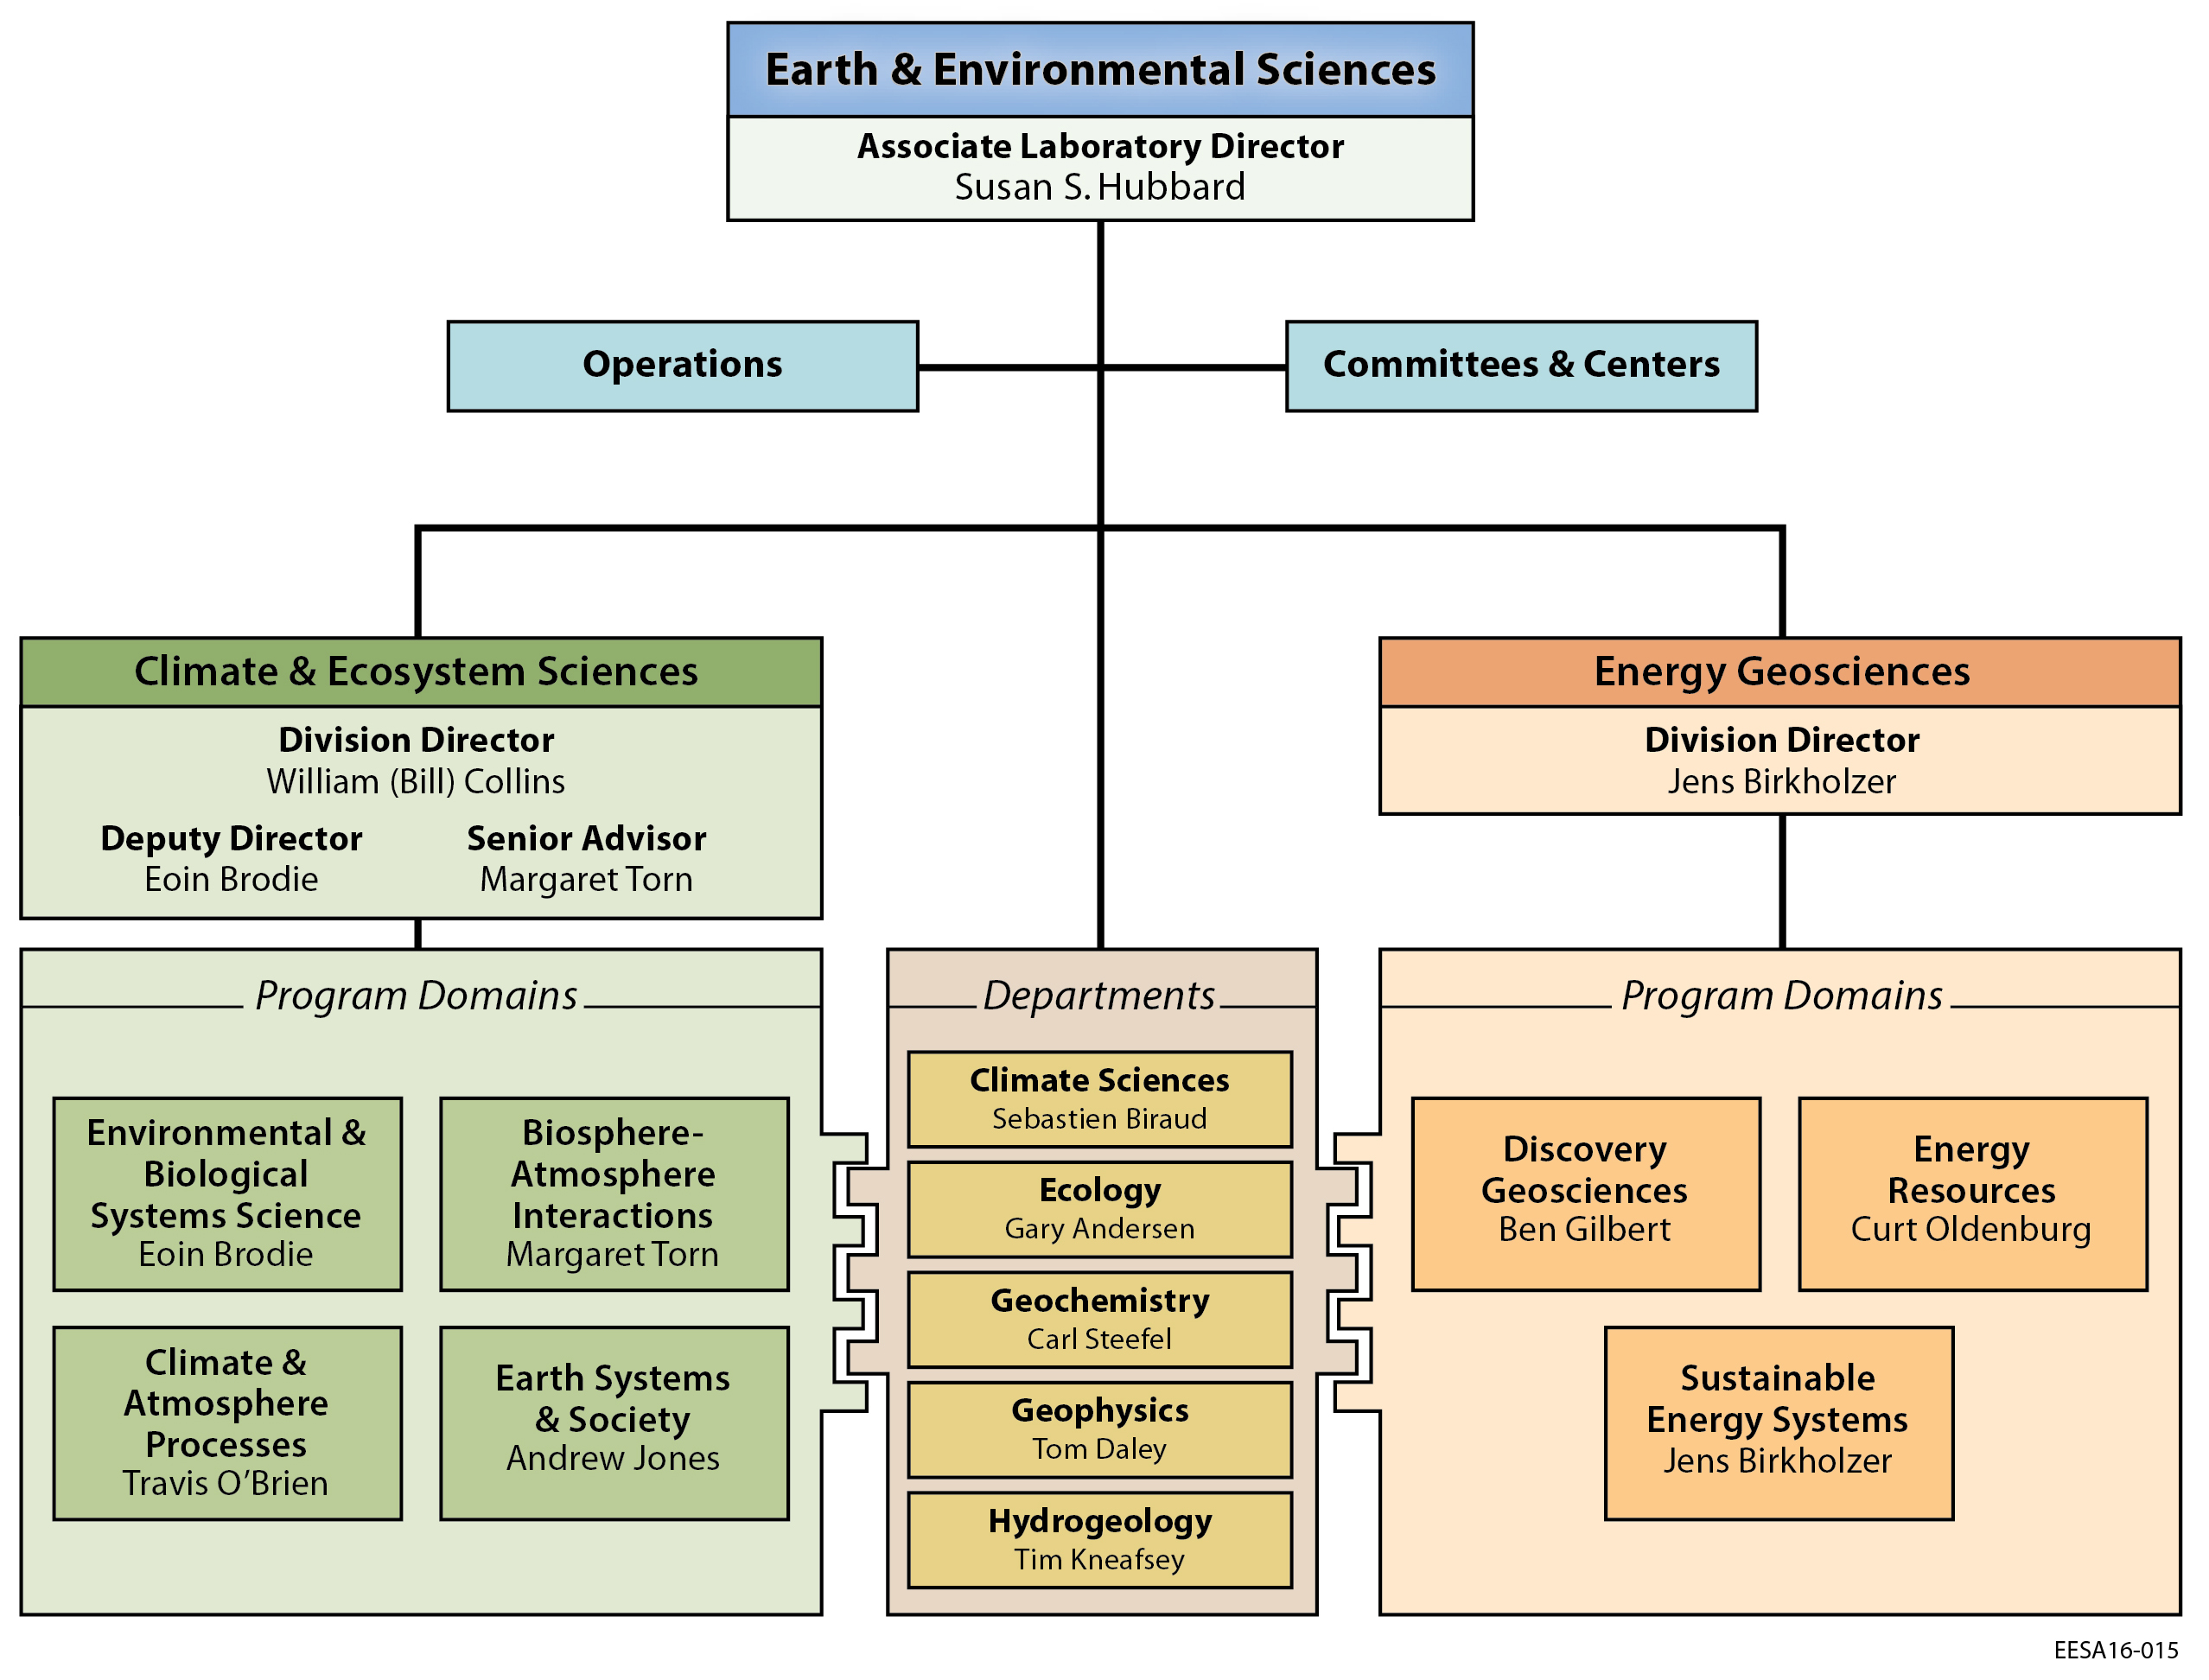 Earth & Environmental Sciences Area Org Chart